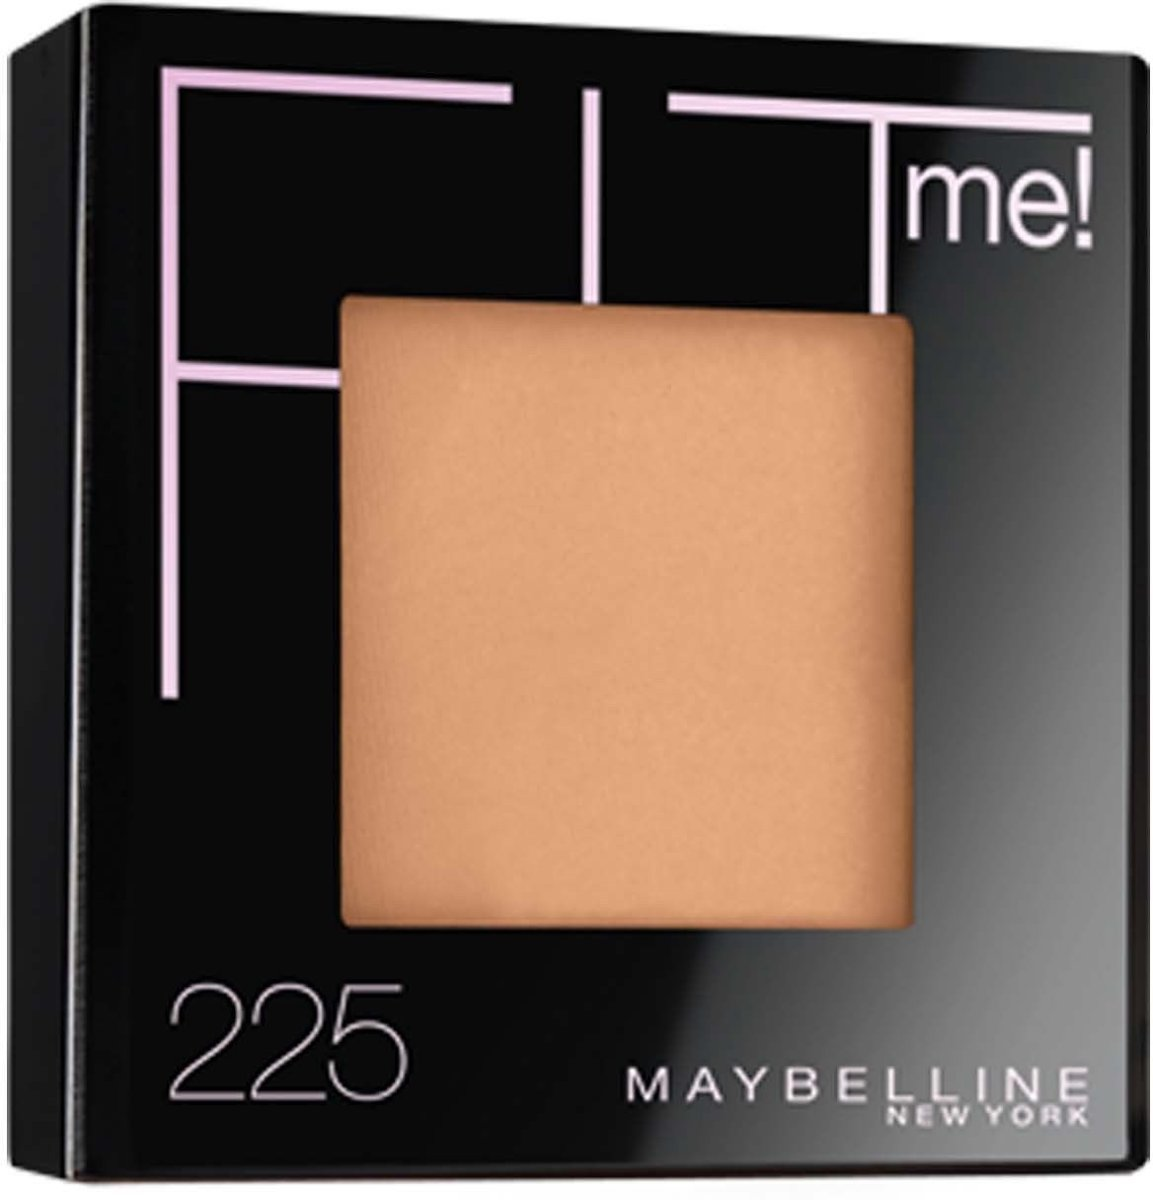 Maybelline Fit Me Pressed Powder - 225 Medium Buff